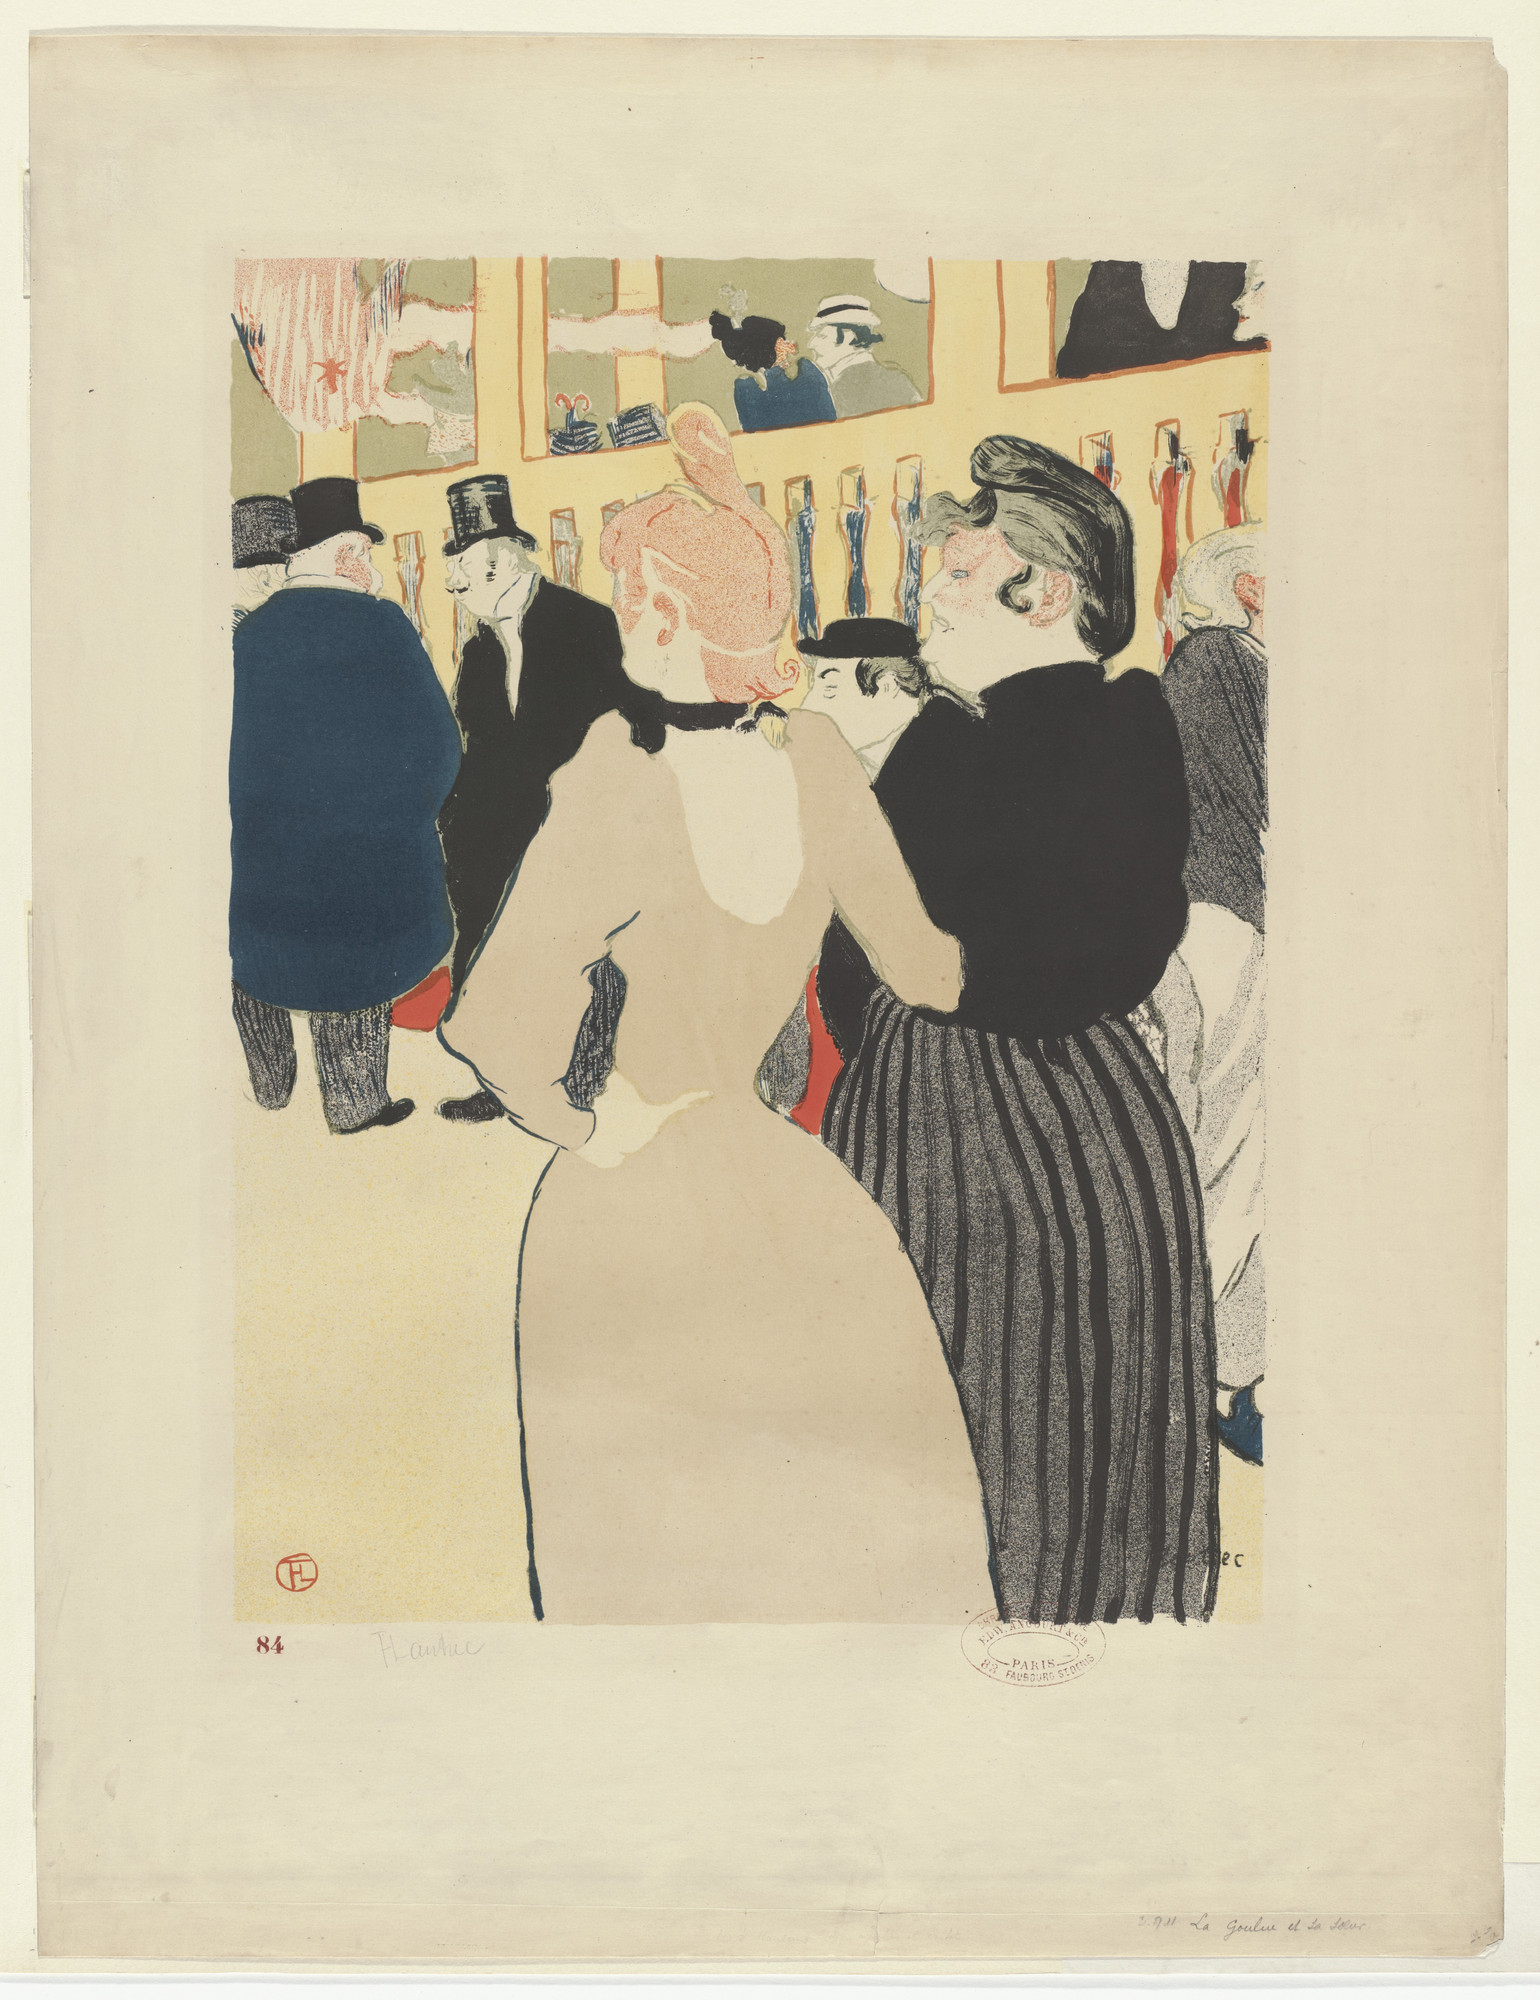 Henri de Toulouse-Lautrec. At the Moulin Rouge, La Goulue and her Sister (Au Moulin Rouge, La Goulue et sa sœur). 1892